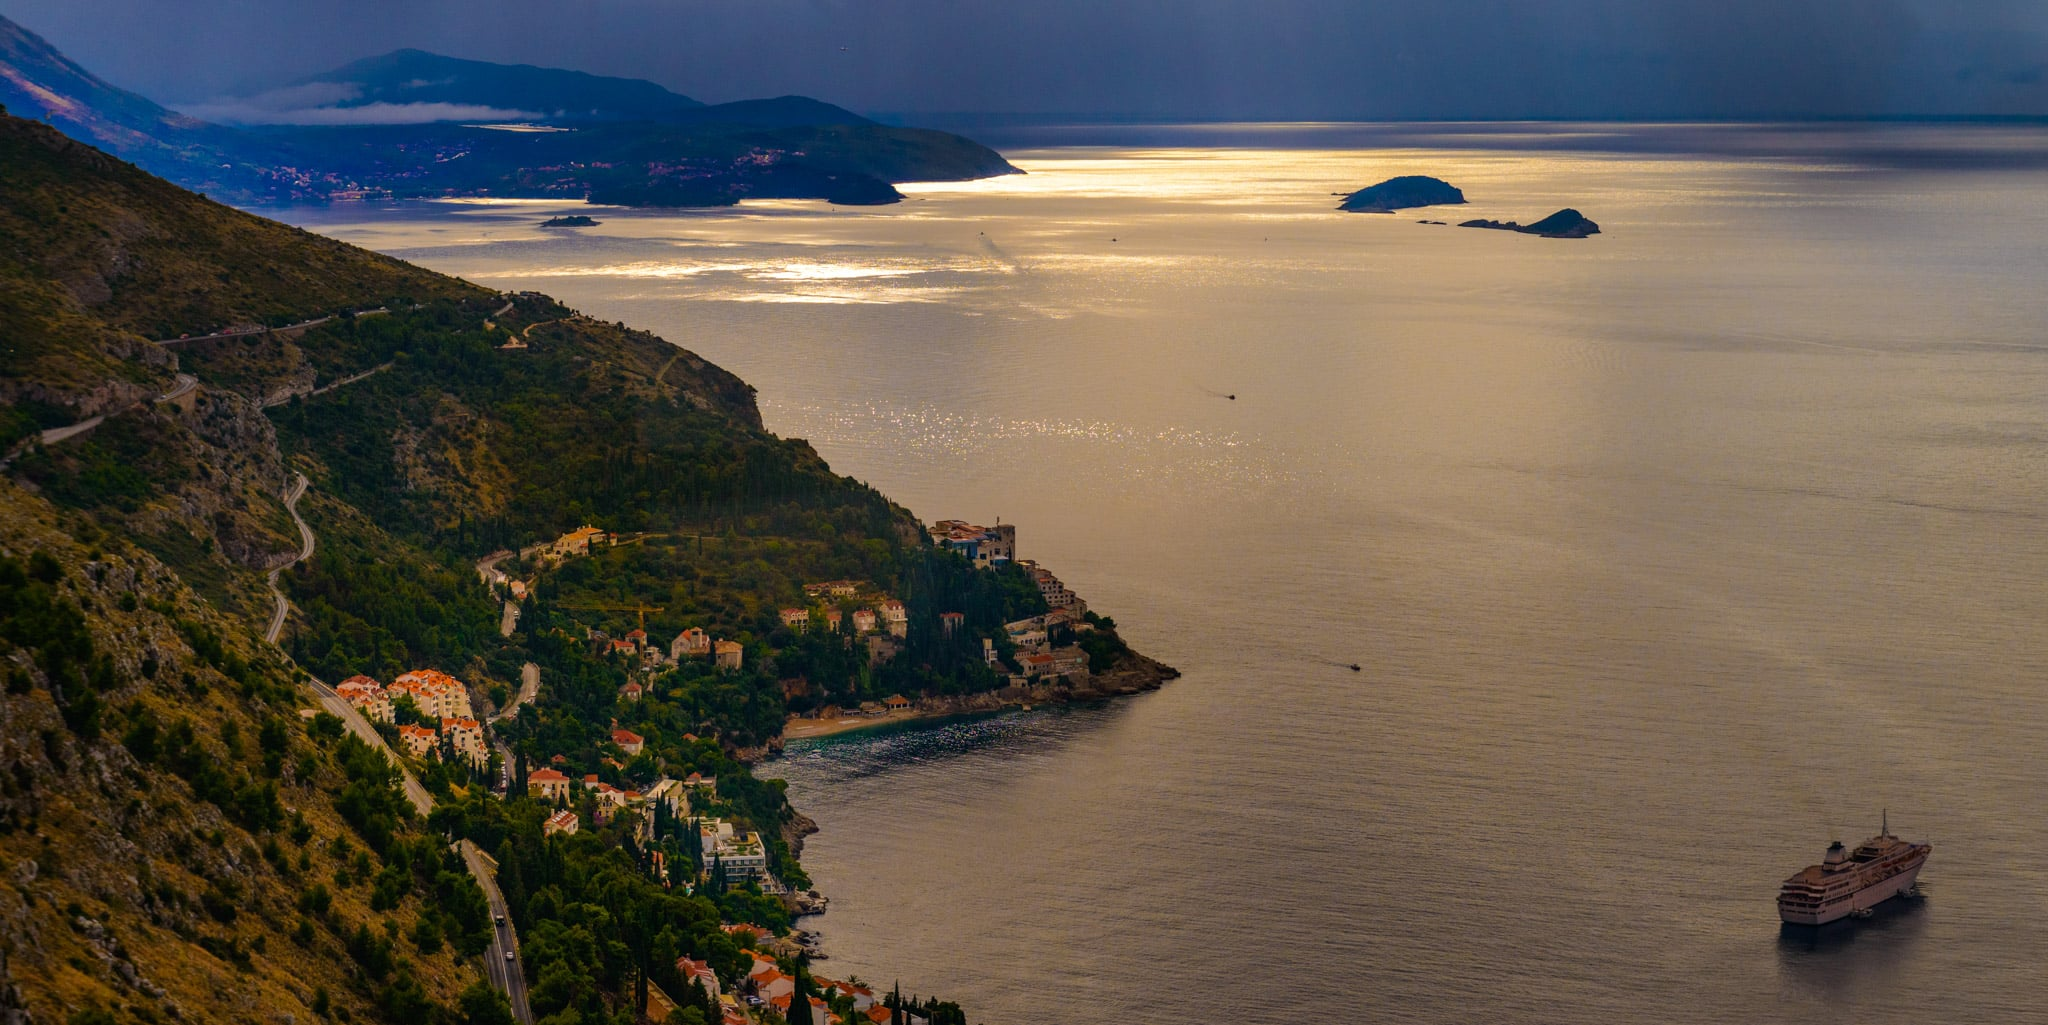 View of Dubrovnik harbor from Mt. Srdj with a winding road, beautiful villas, and a cruise ship.